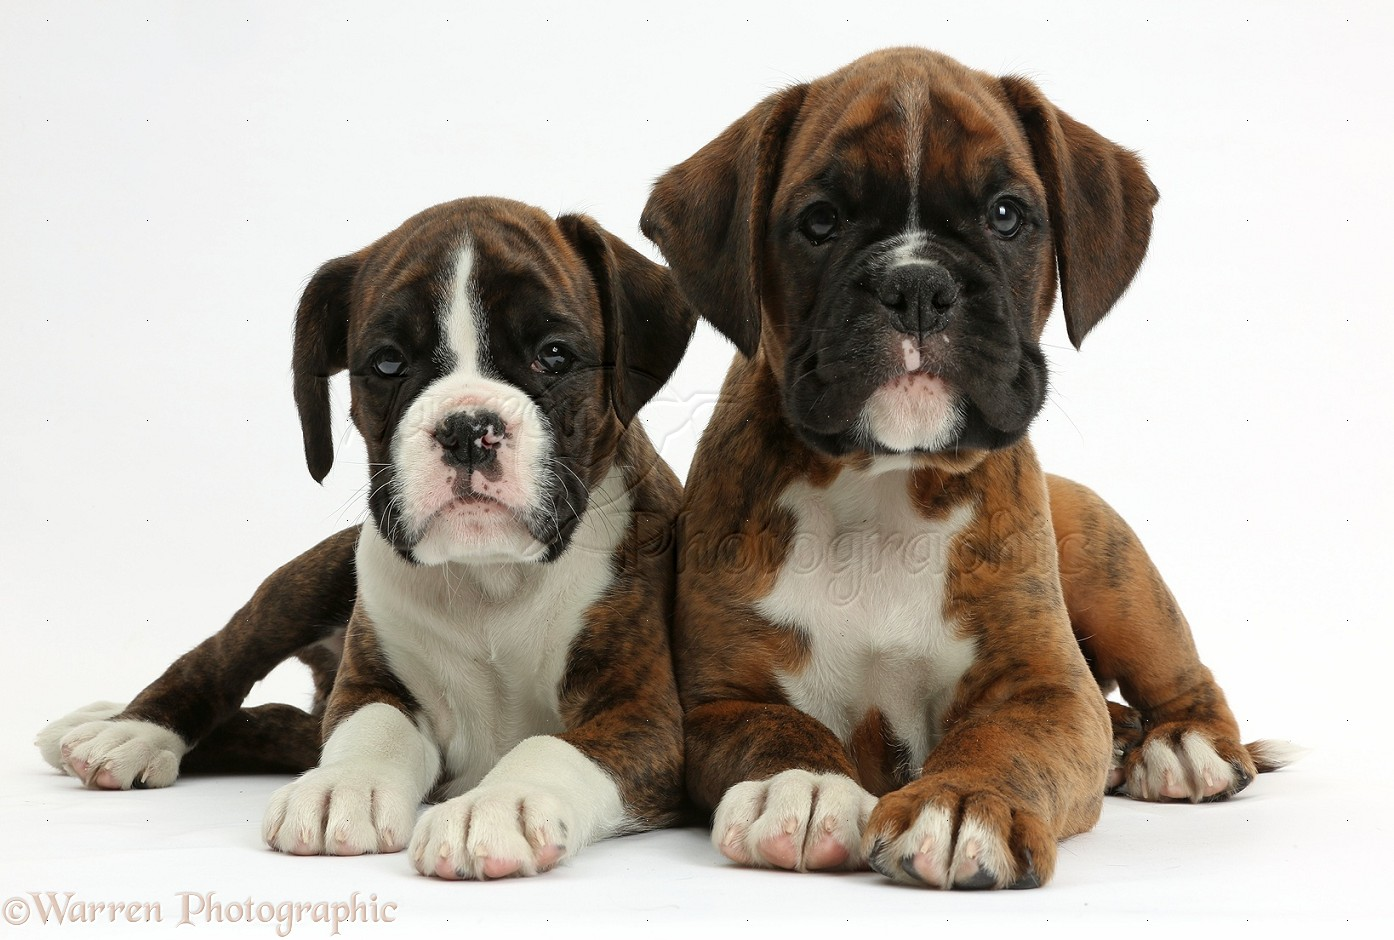 dogs two boxer puppies 8 weeks old photo wp38160